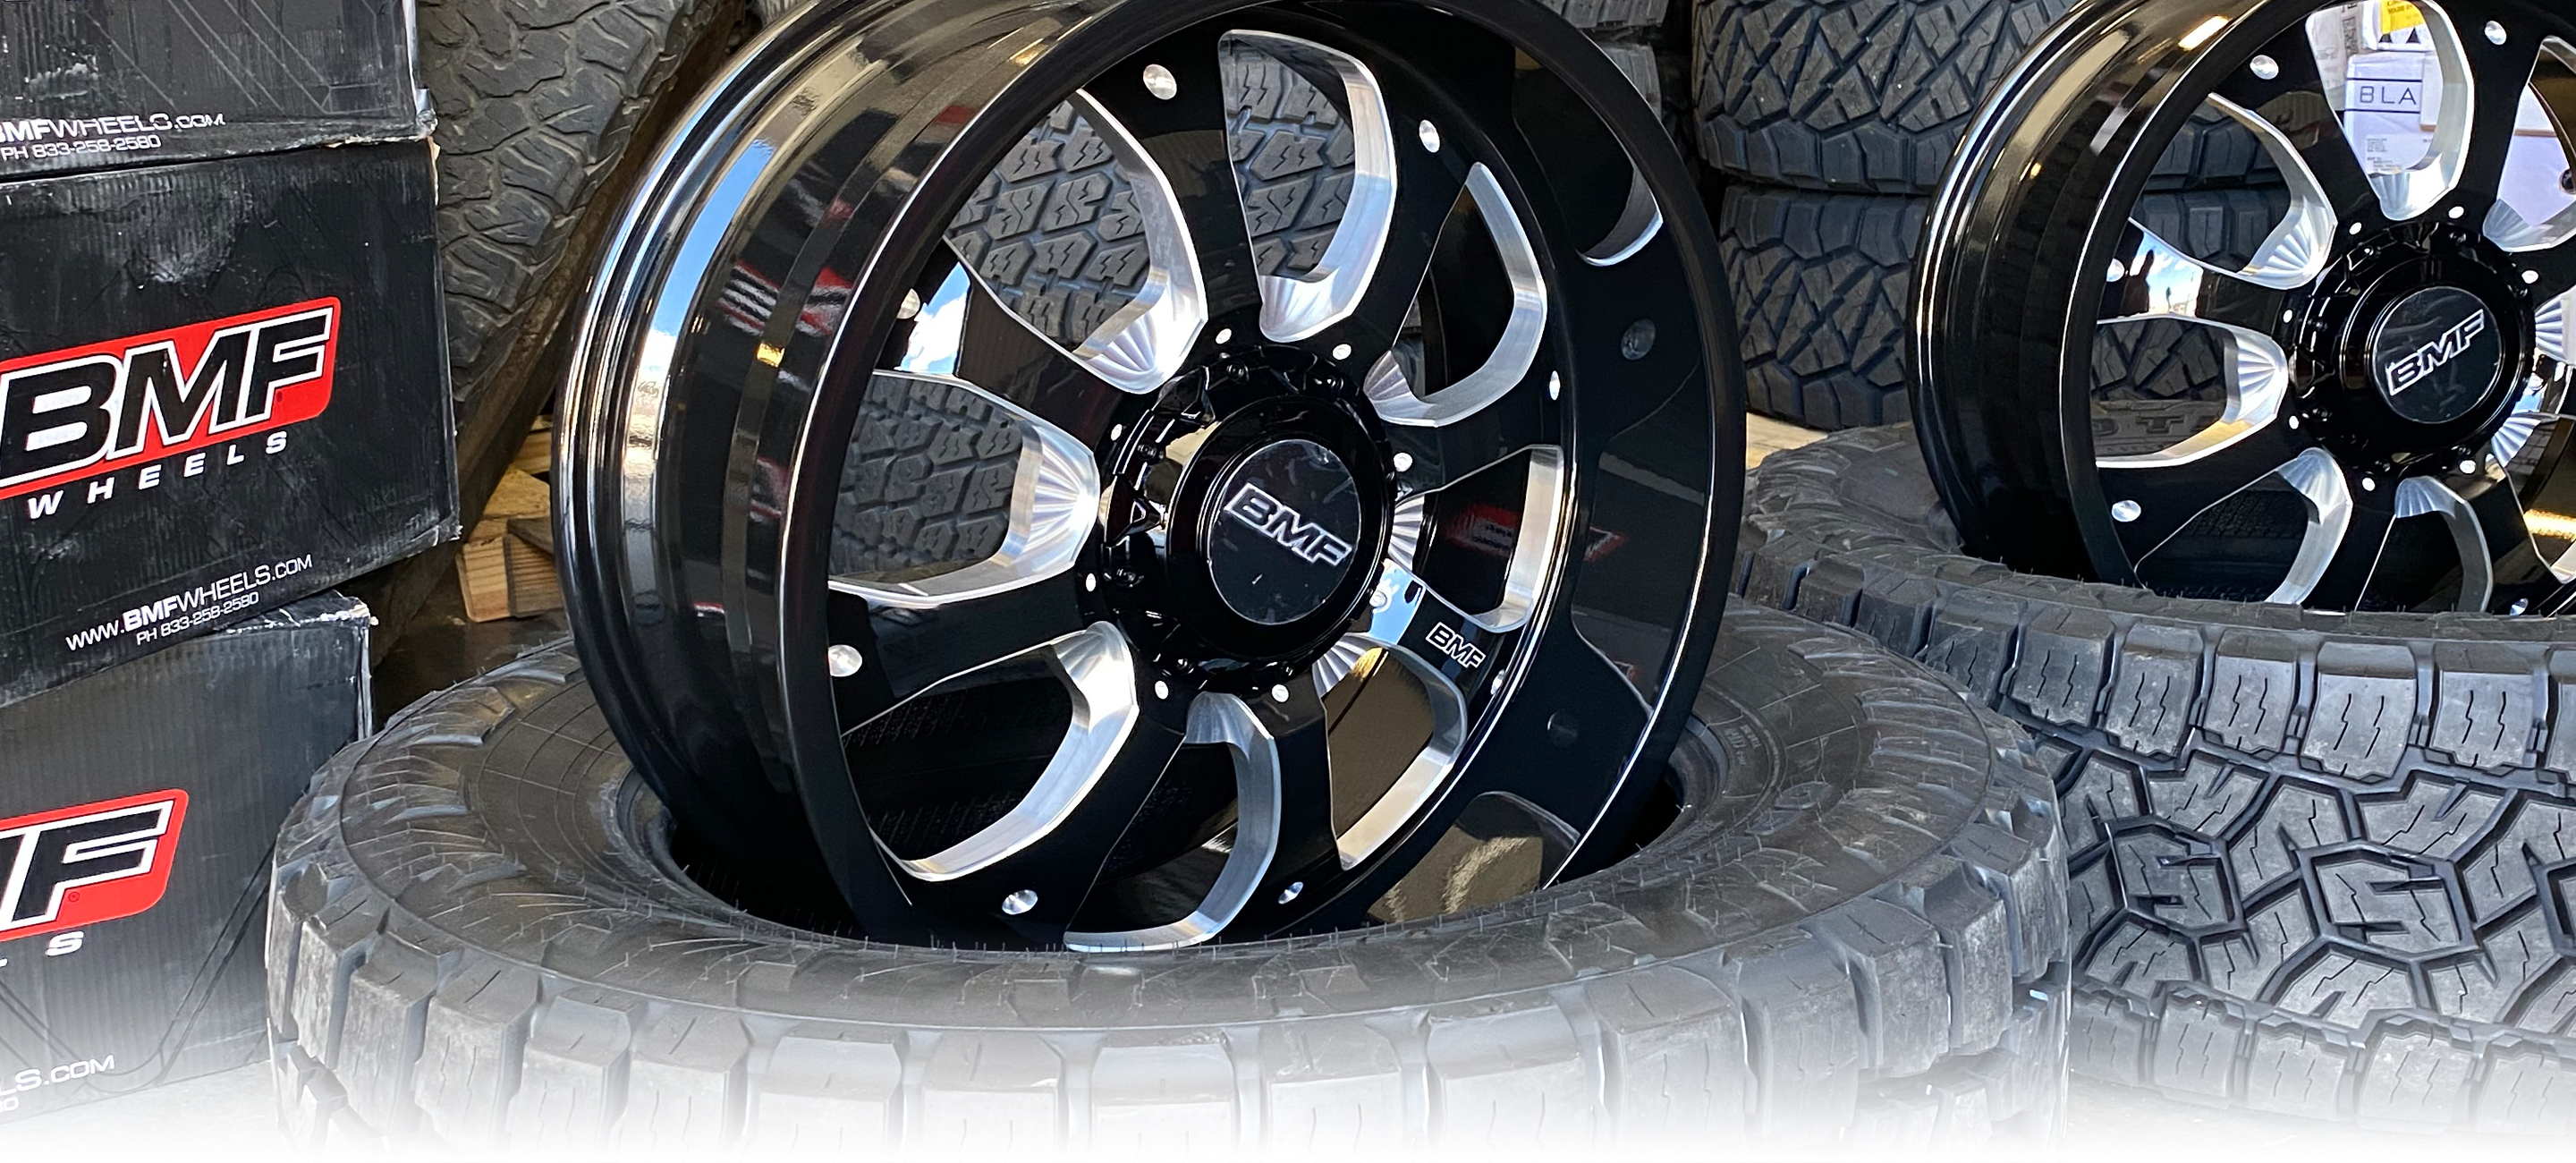 BMF Payback-6 Truck Wheels are available for most trucks and SUVs in 20x9, 20x10, 22x10.5 wheel sizes.